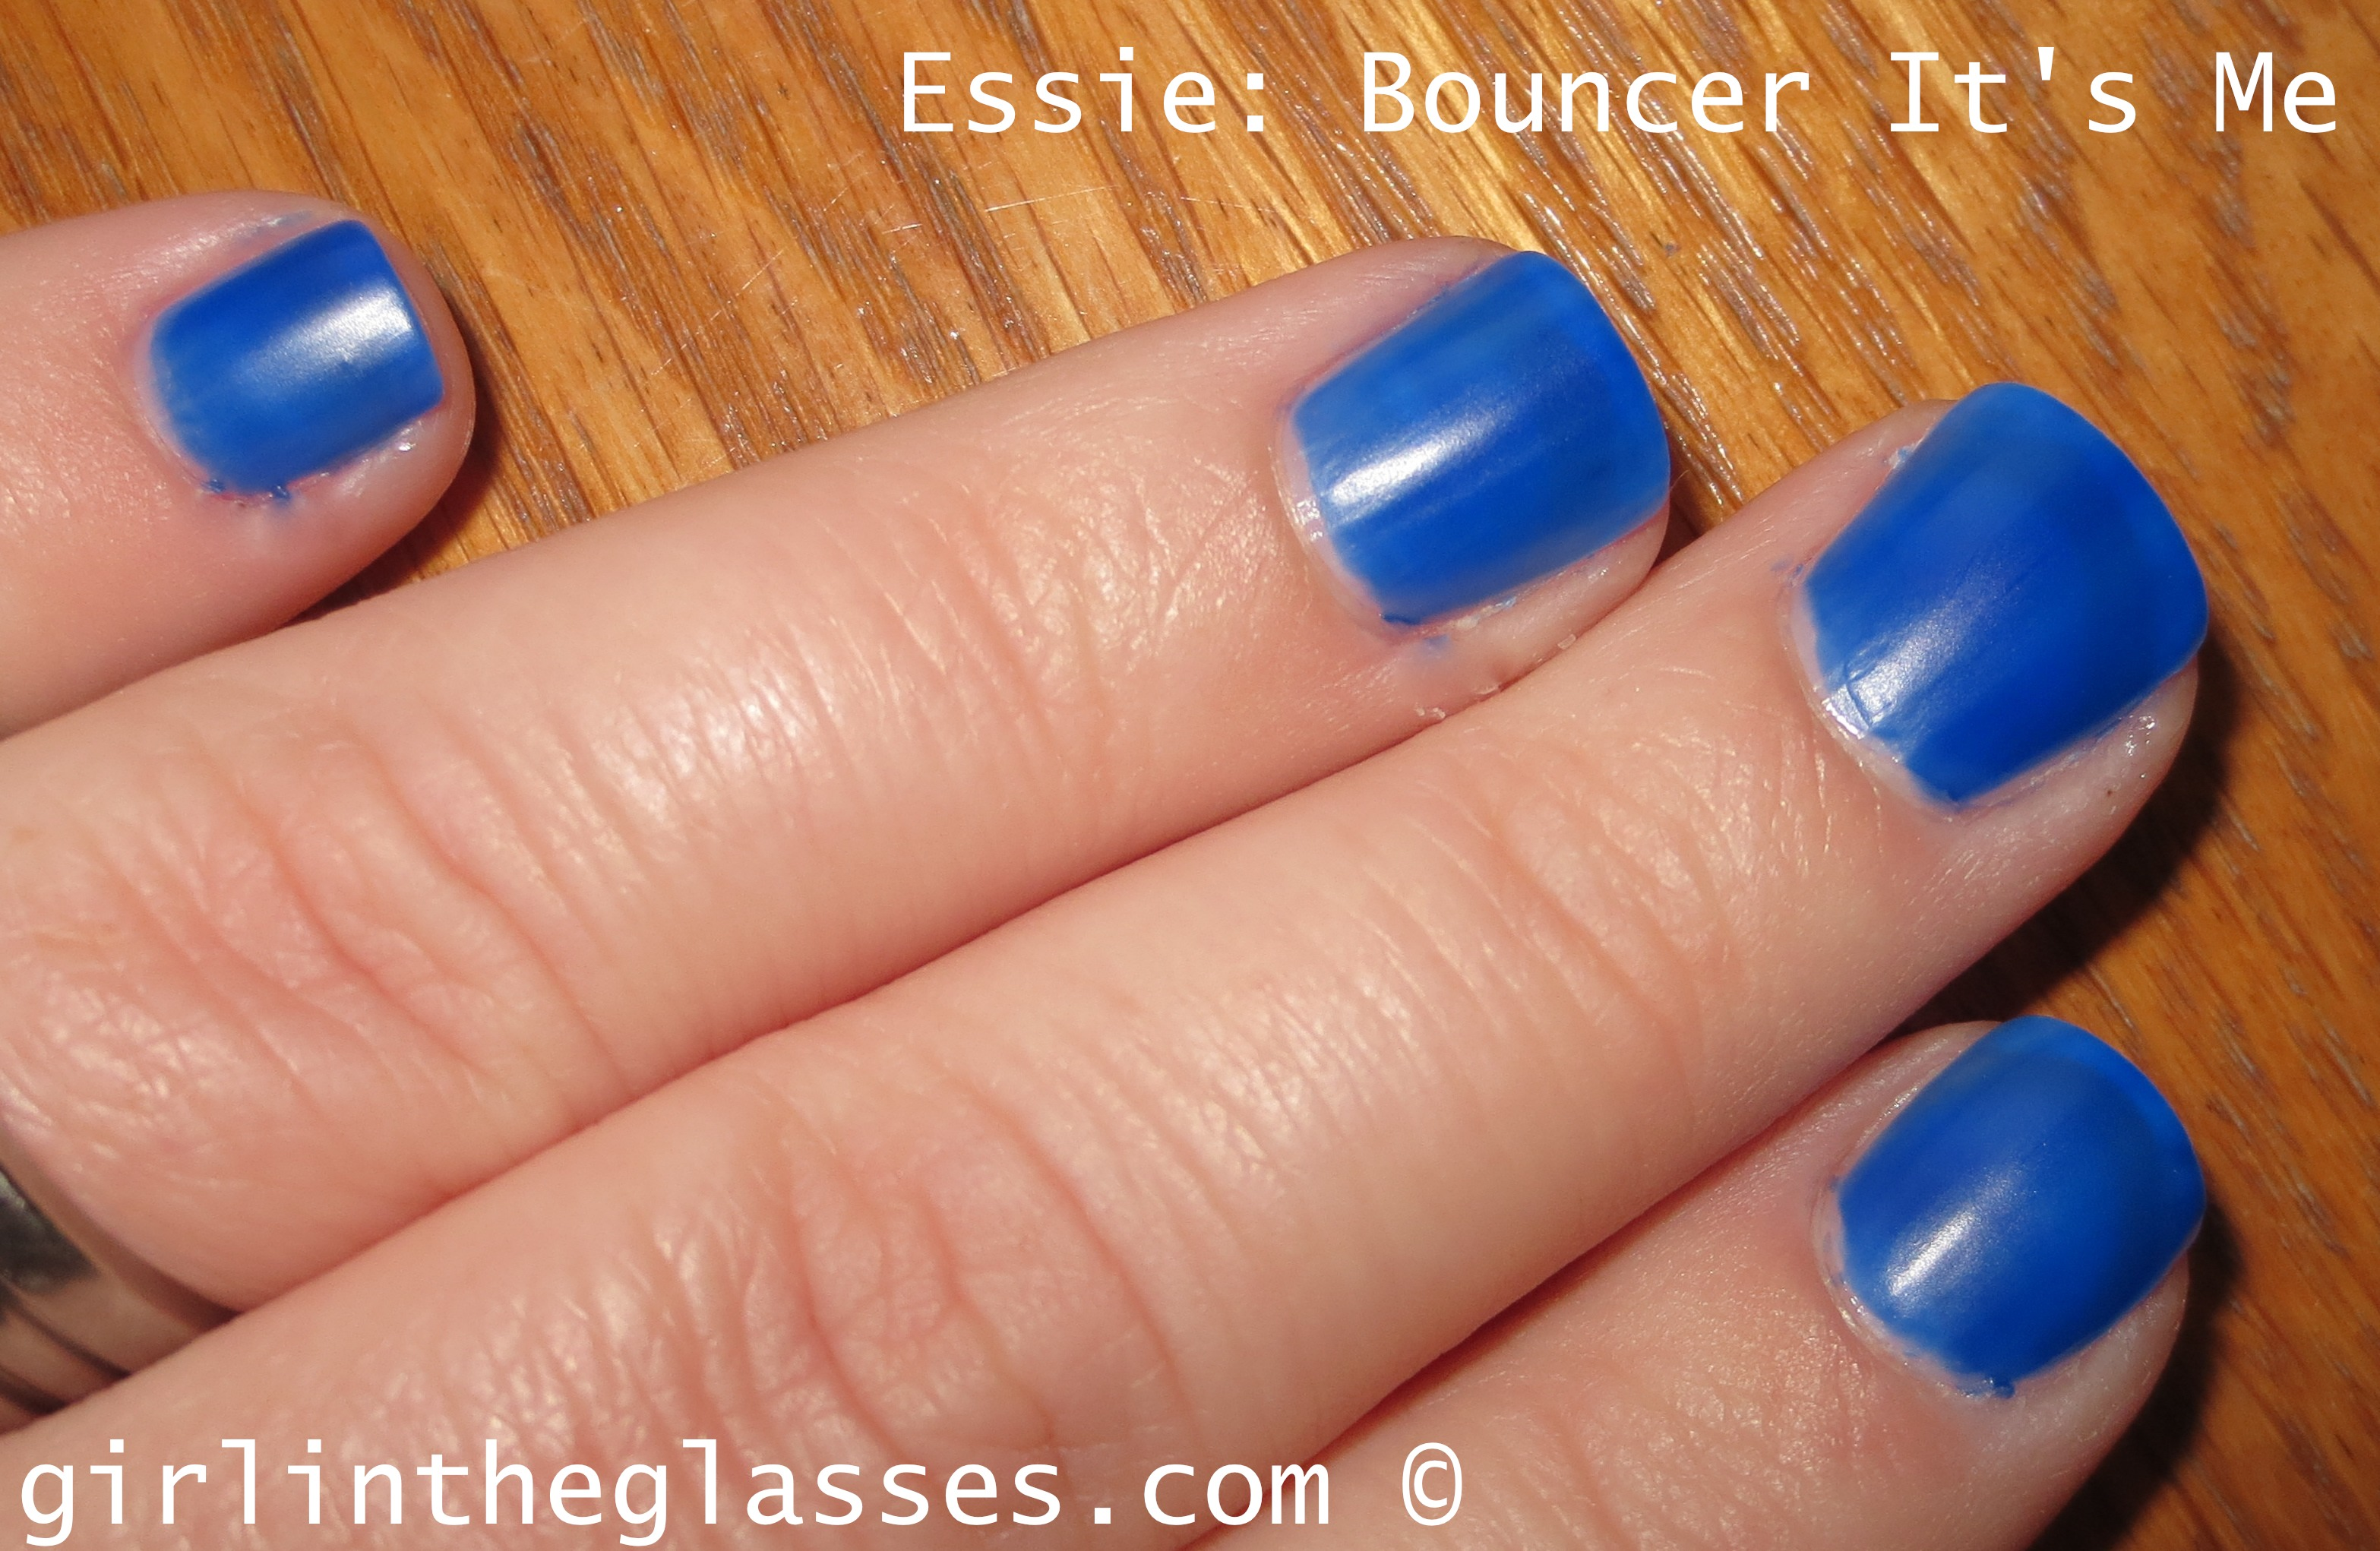 essie nail polish | girlintheglasses